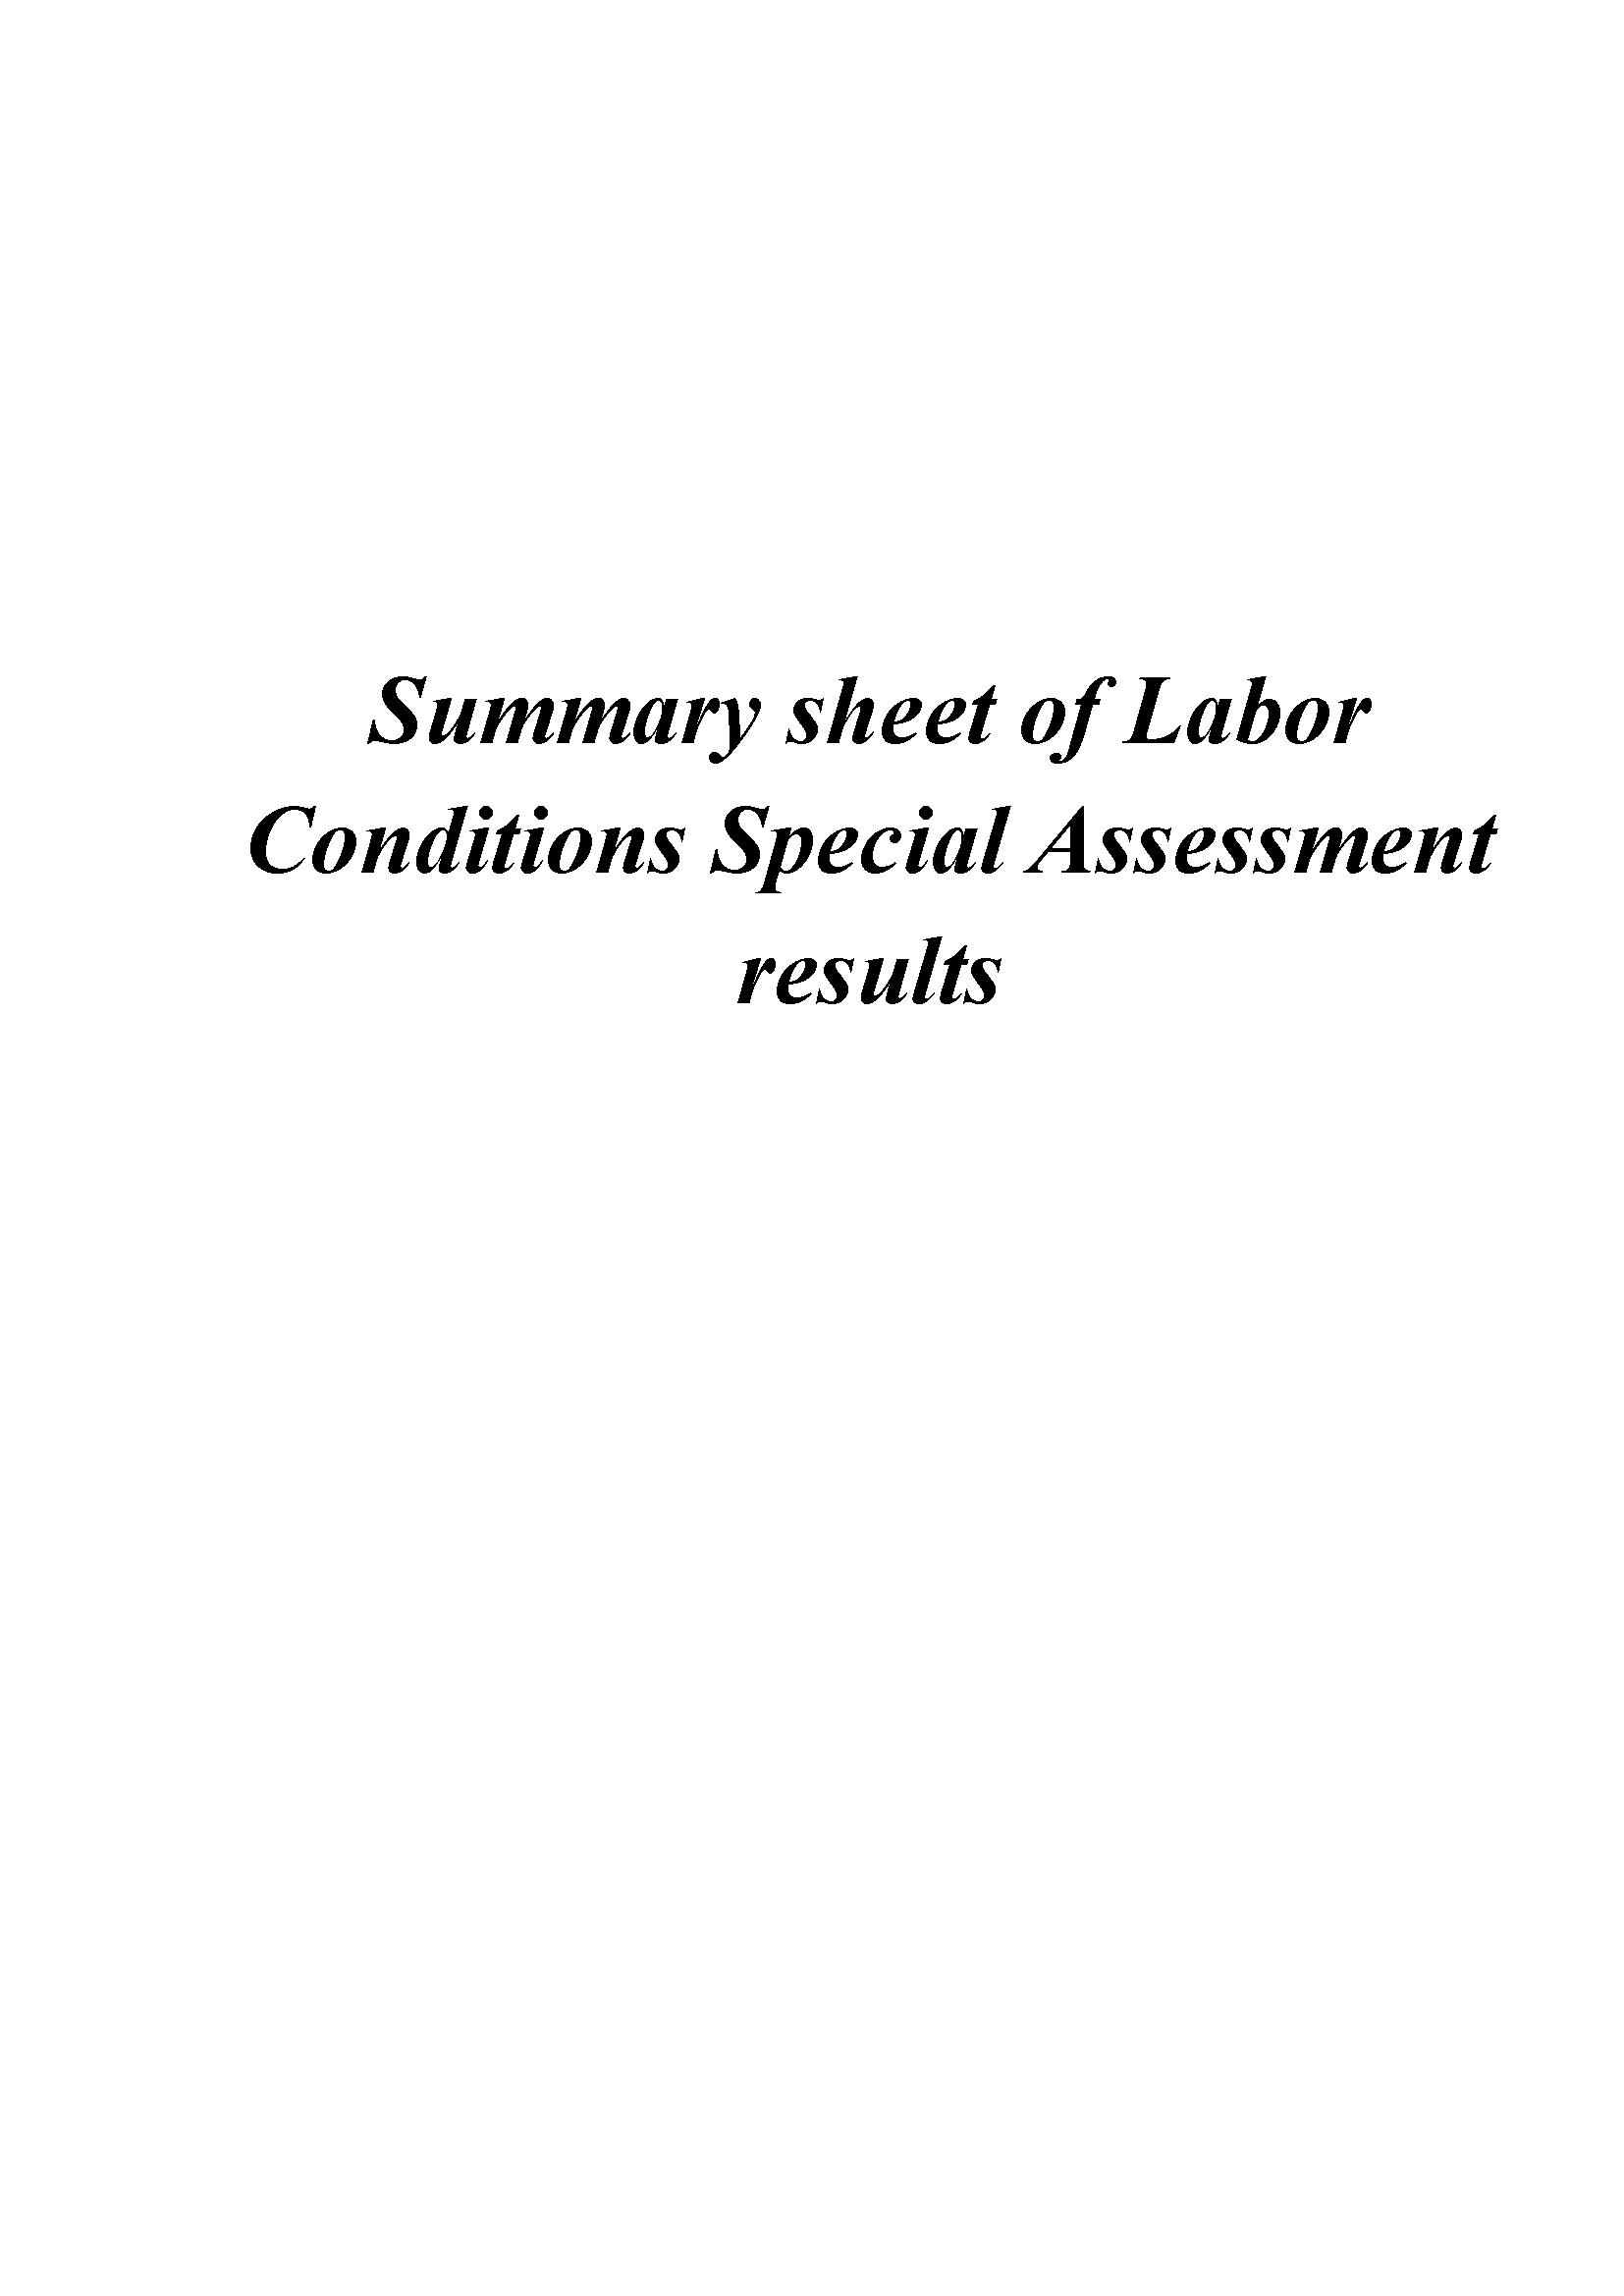 Summary sheet of Labor Conditions Special Assessment results